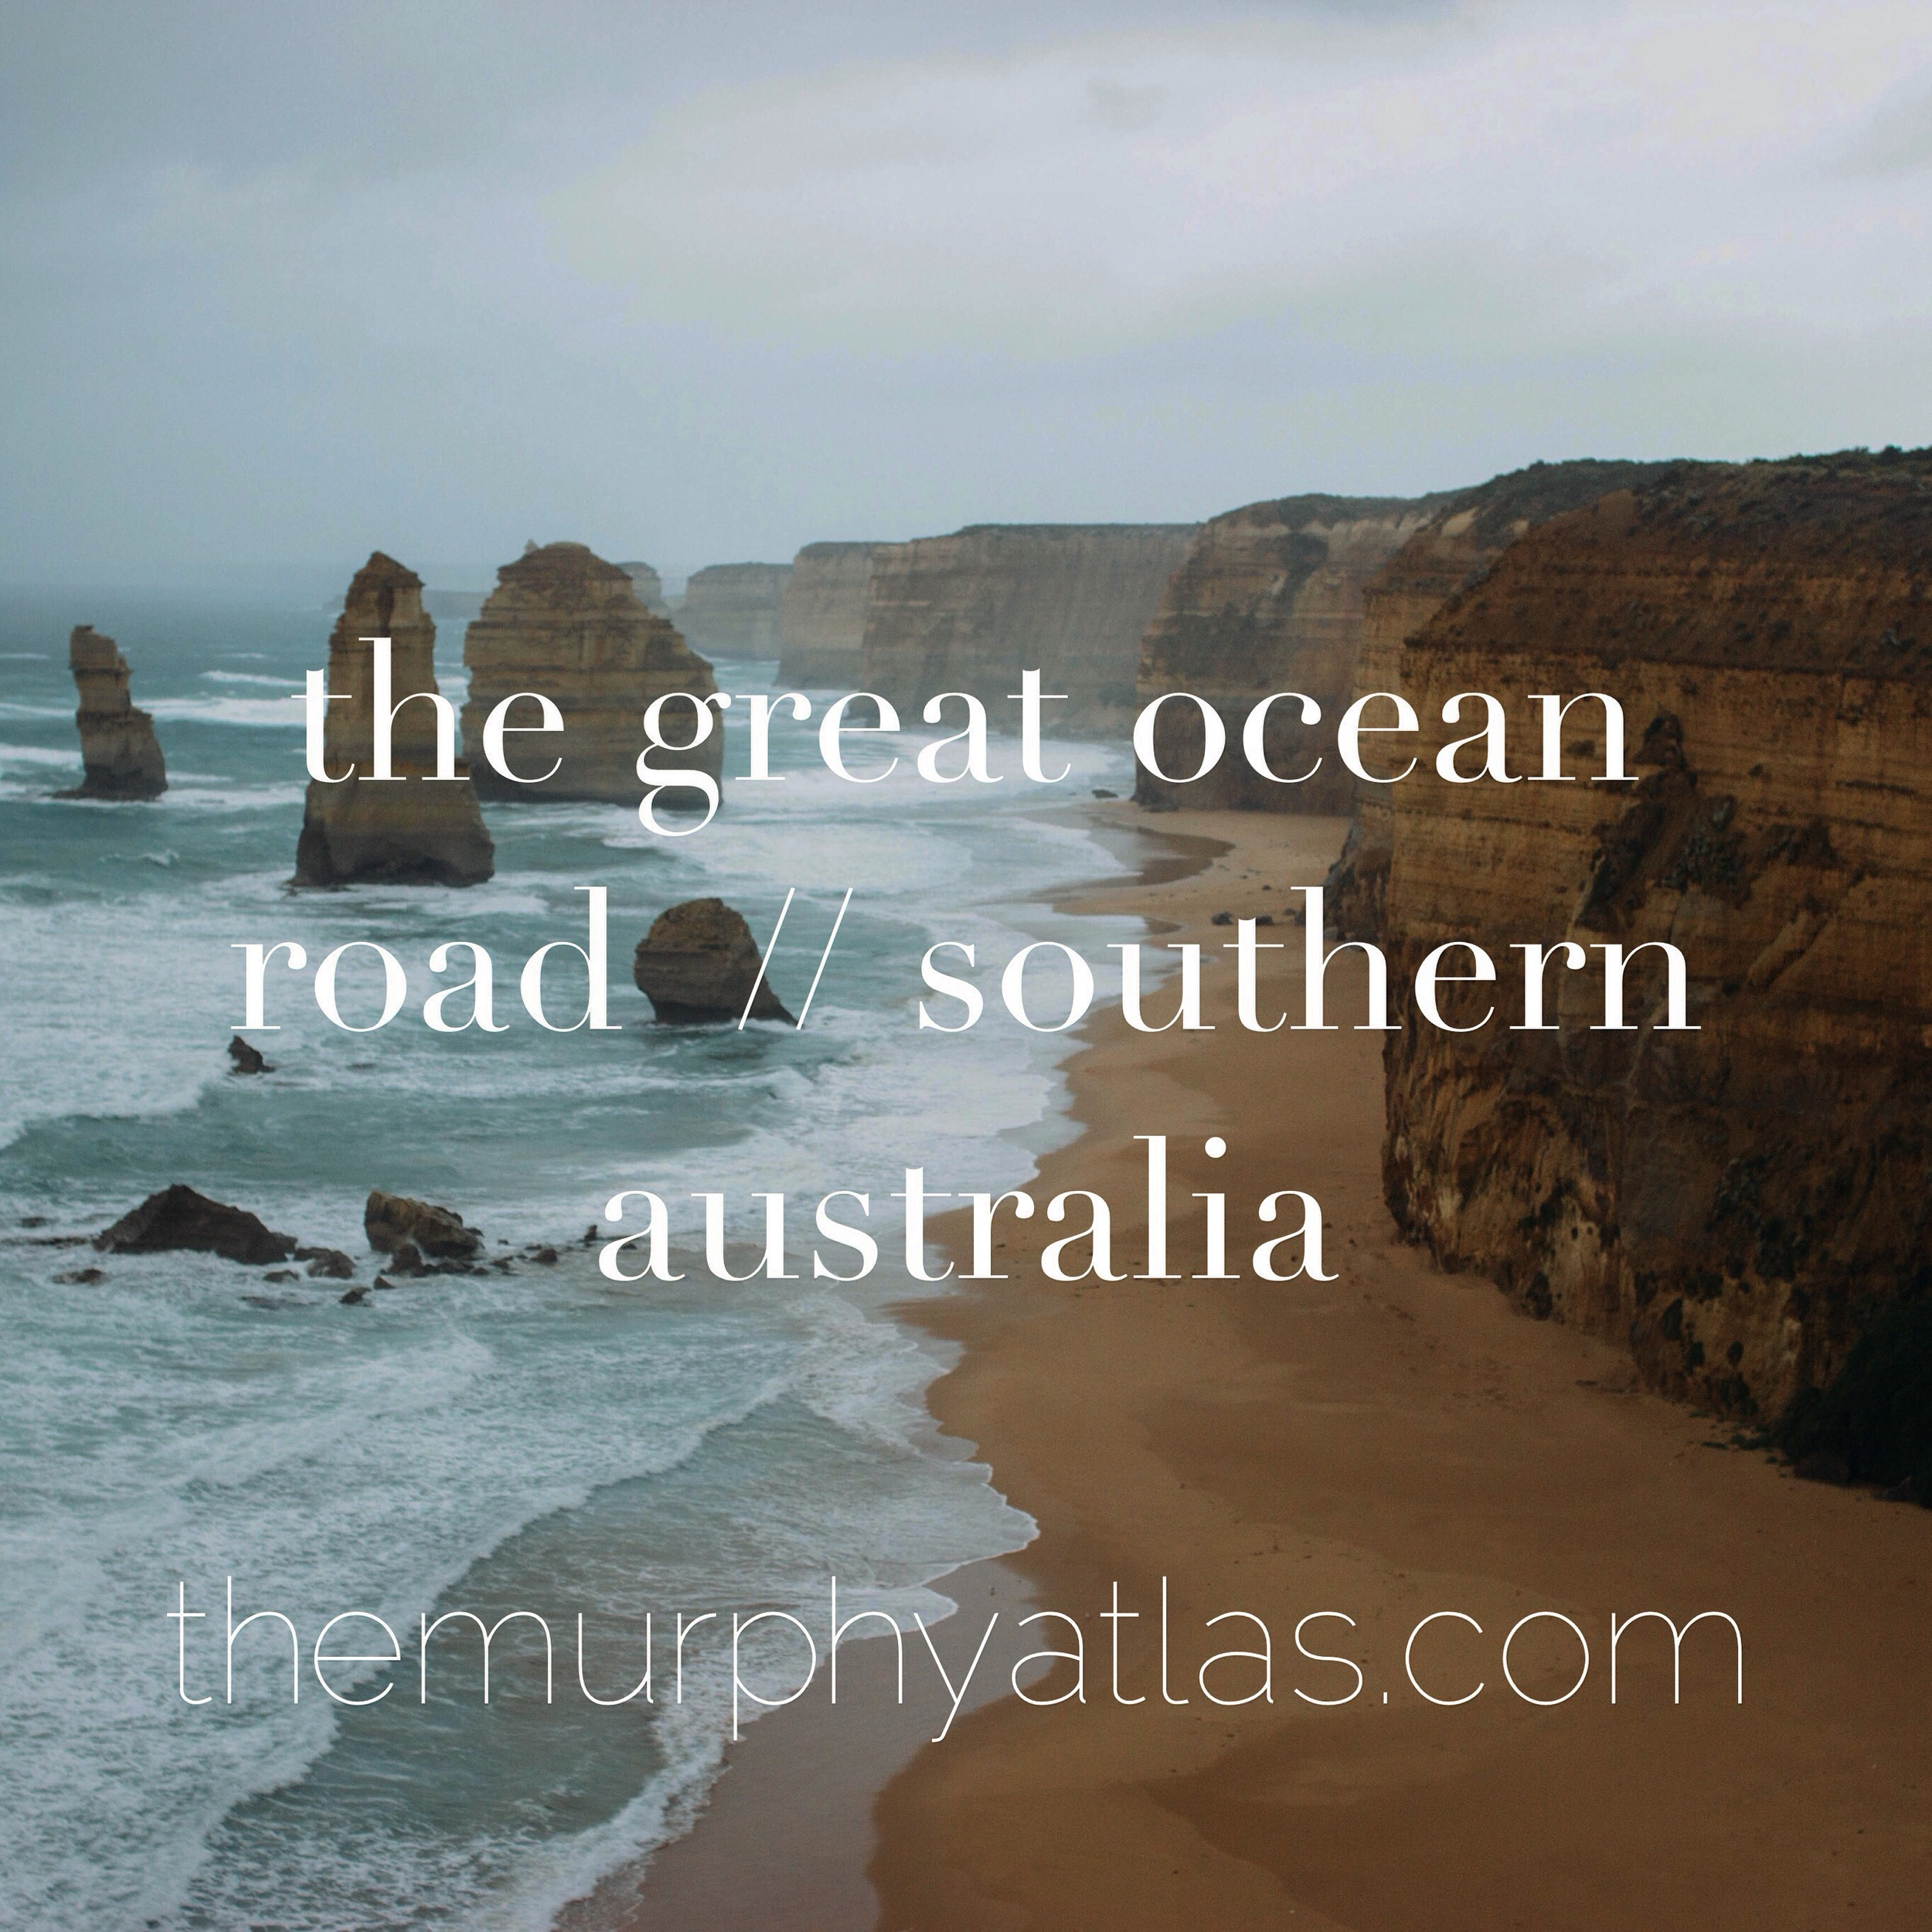 Travel Tips for driving the Great Ocean Road in Southern Australia - The Murphy Atlas